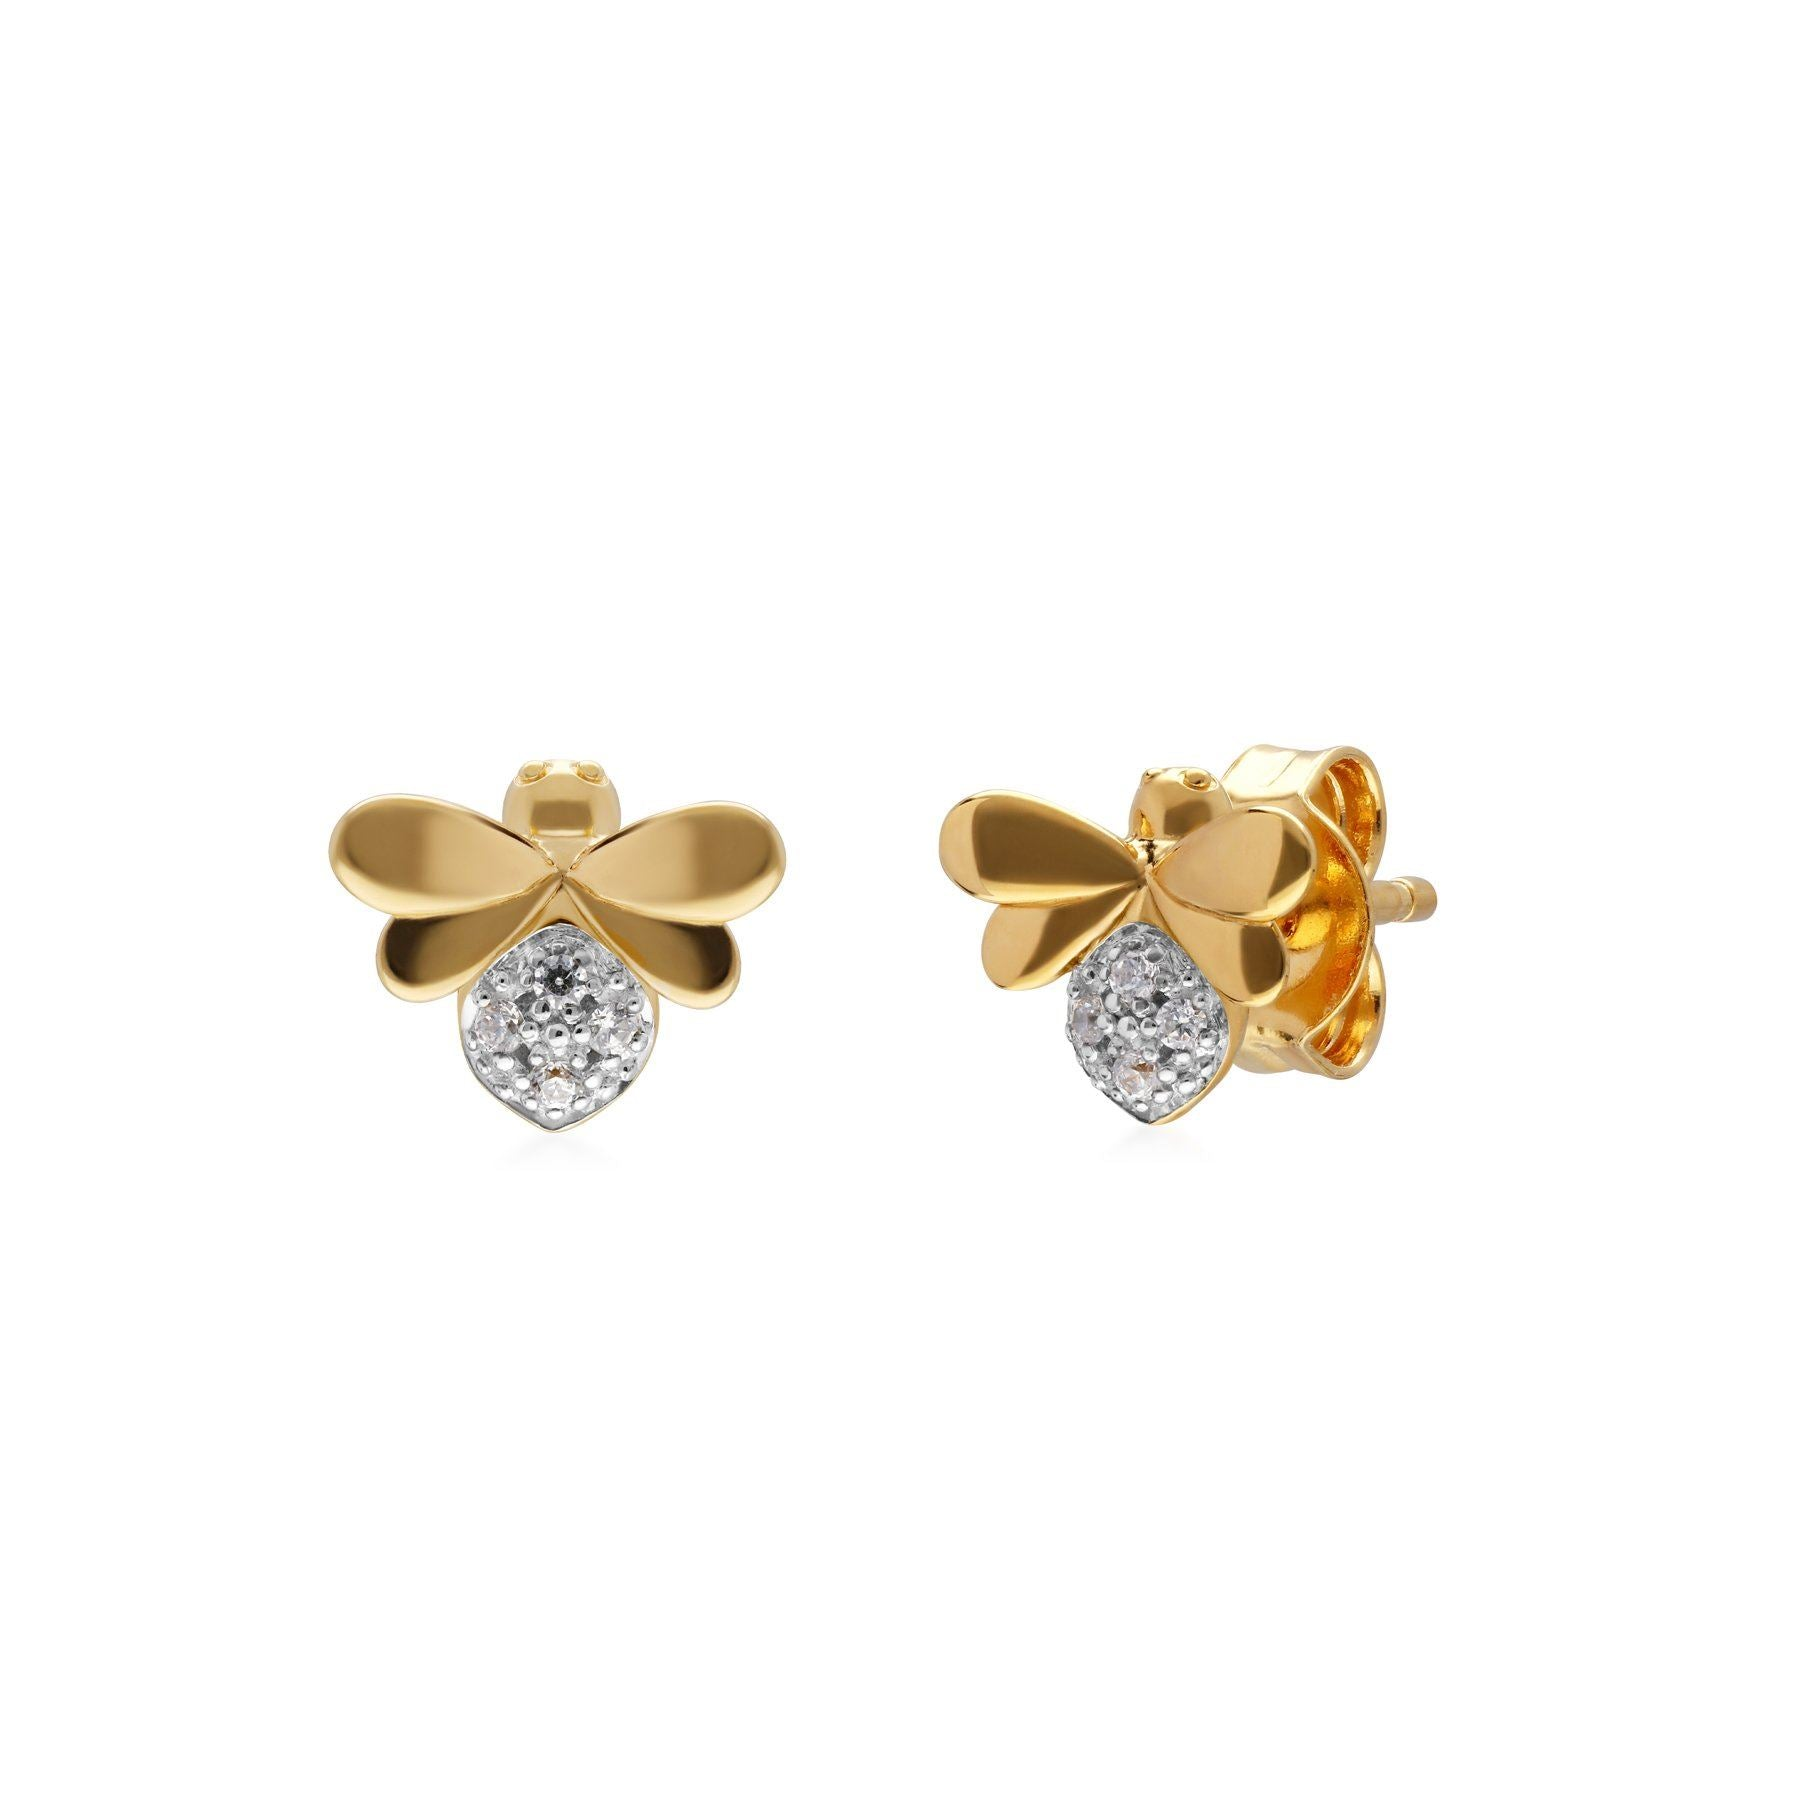 Honeycomb Inspired Diamond Bee Earrings in 9ct Yellow Gold Deal Price £ 155.00